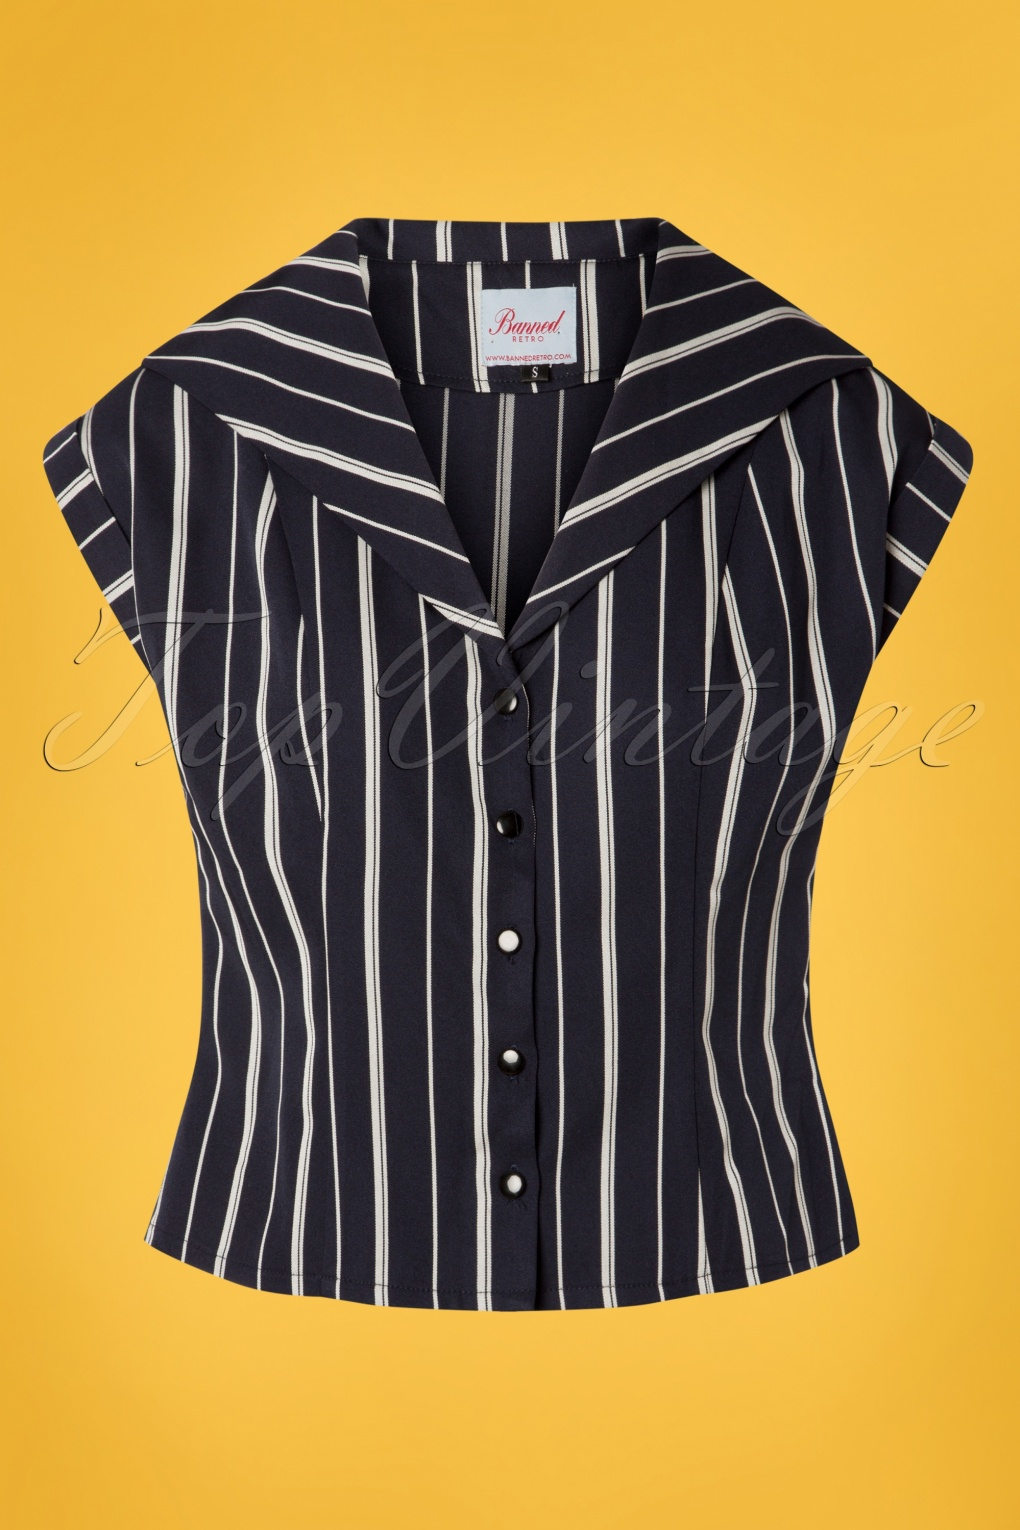 Vintage & Retro Shirts, Halter Tops, Blouses 20s Deckchair Stripes Blouse in Navy and White £31.99 AT vintagedancer.com